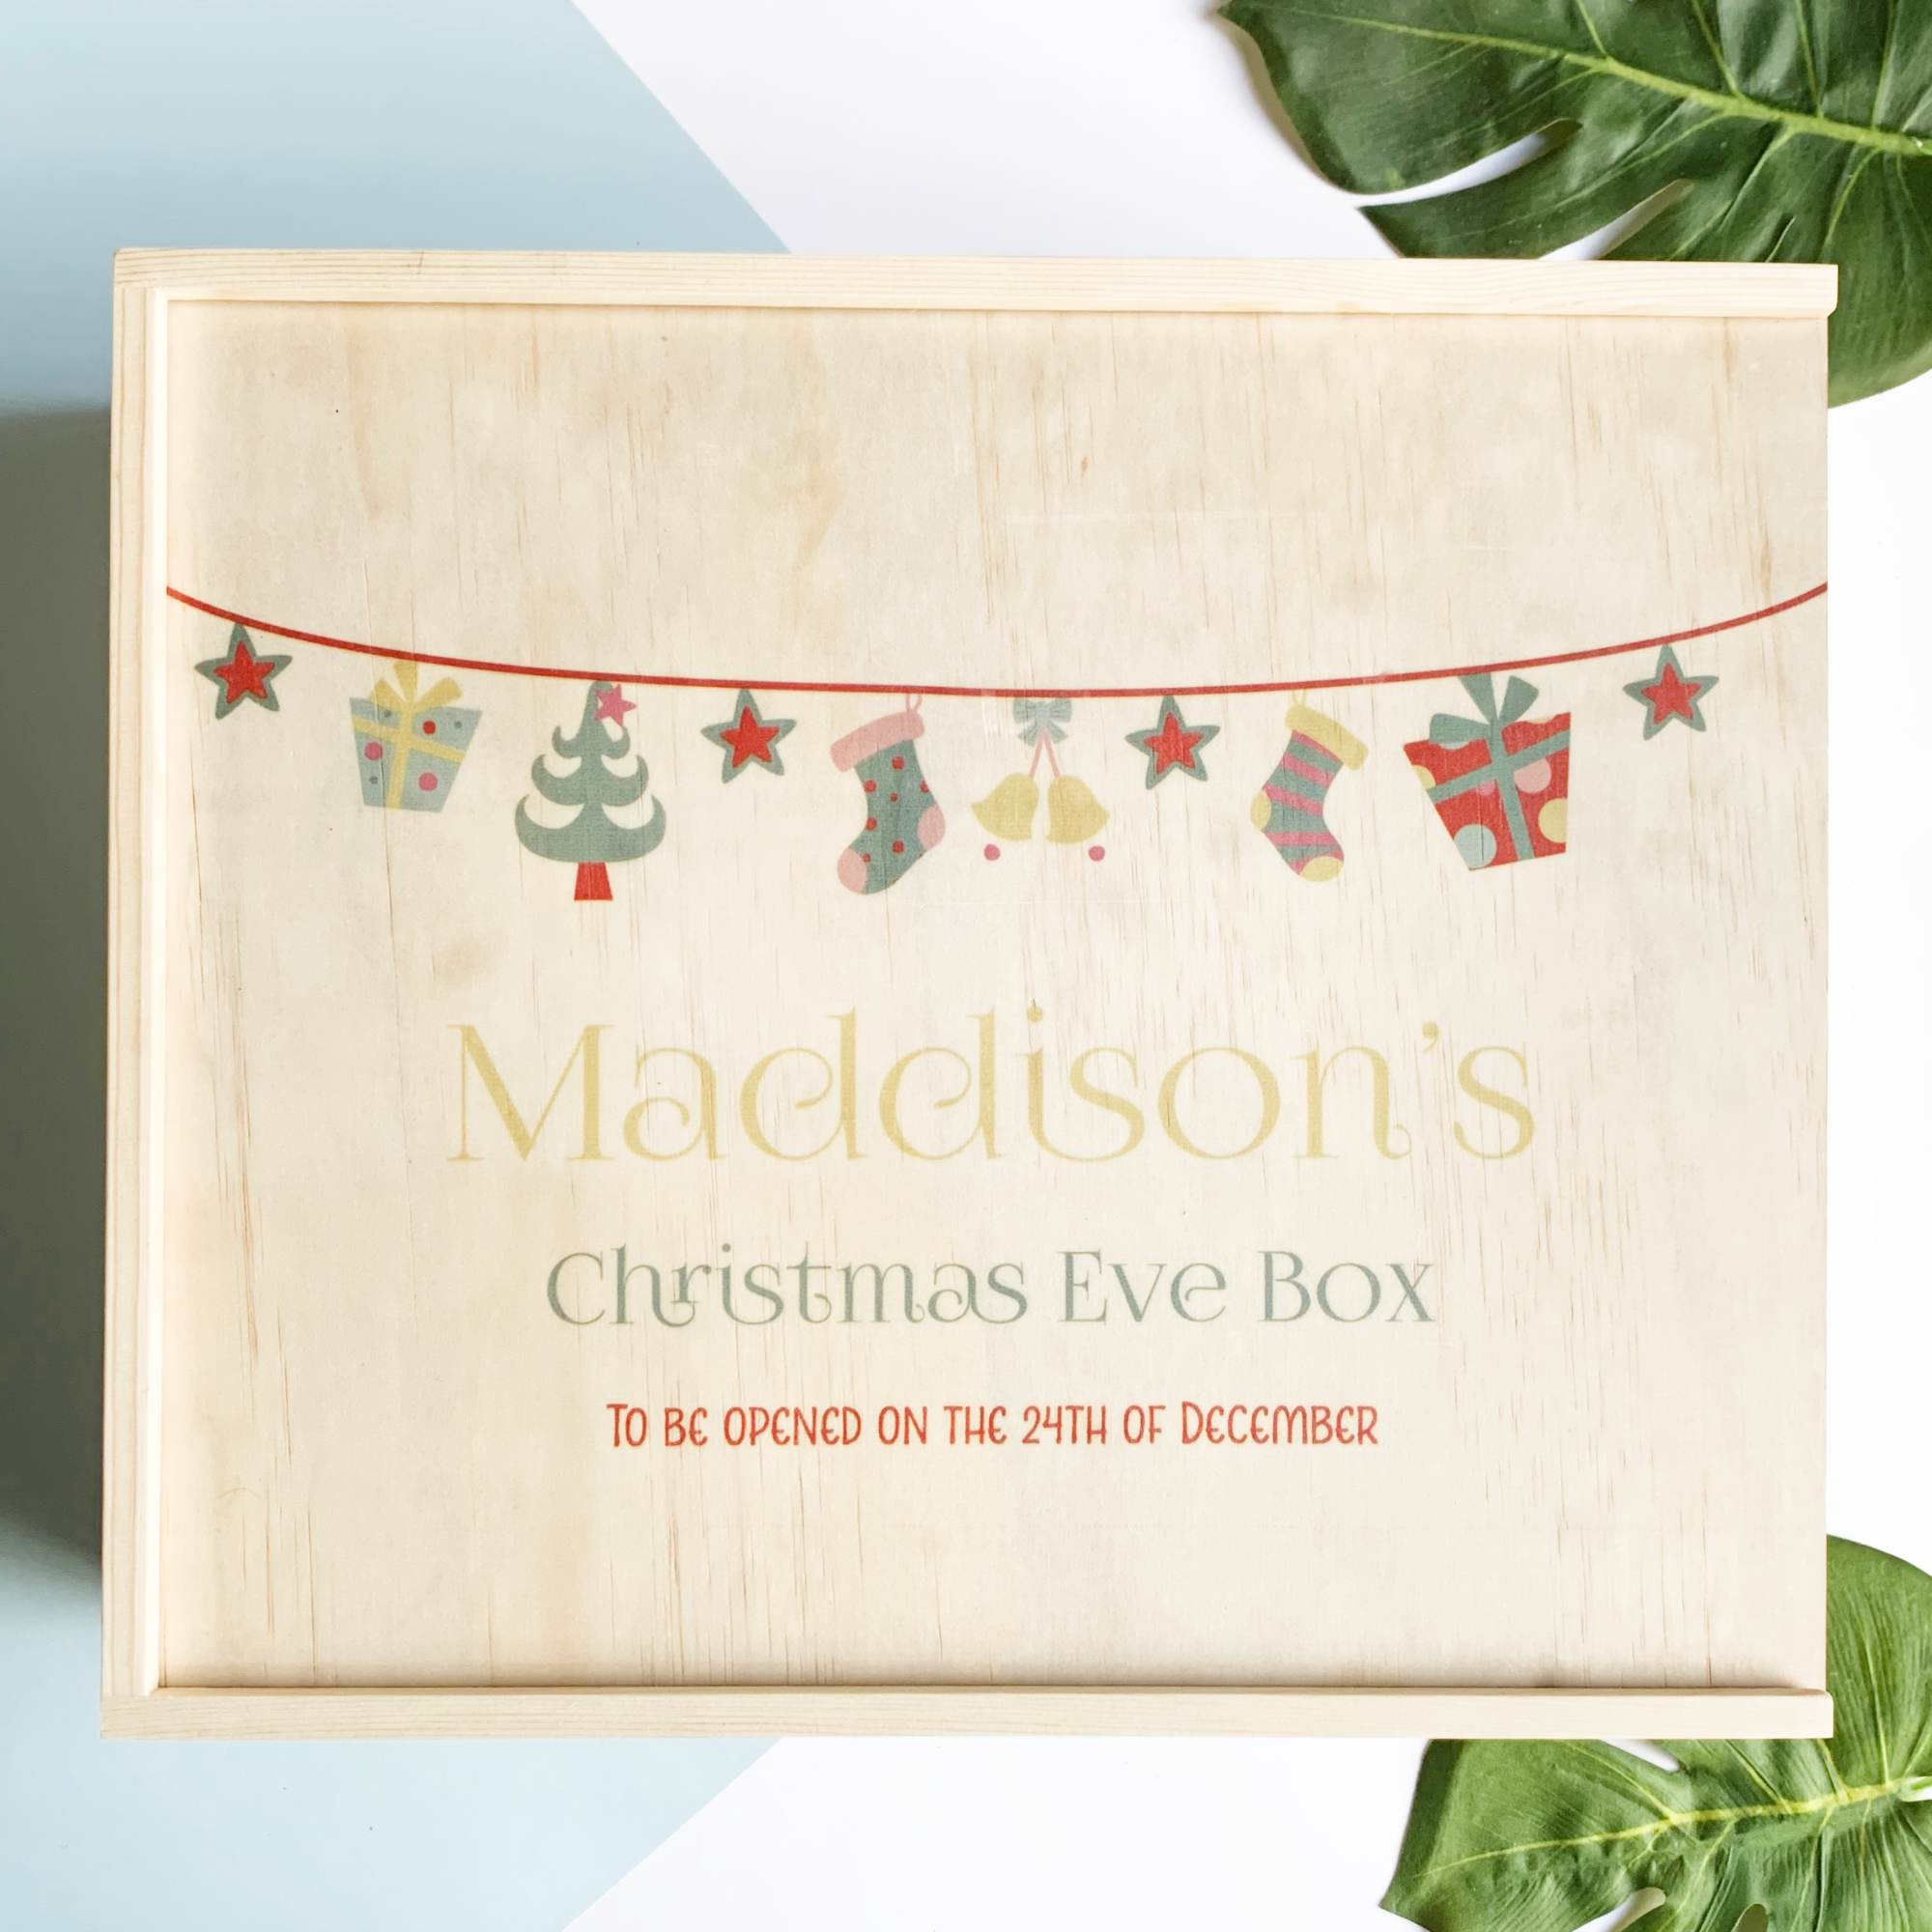 personalised-christmas-eve-box-australia-christmas-eve-box-personalised-christmas-box-wooden-christmas-eve-box-xmas-eve-box